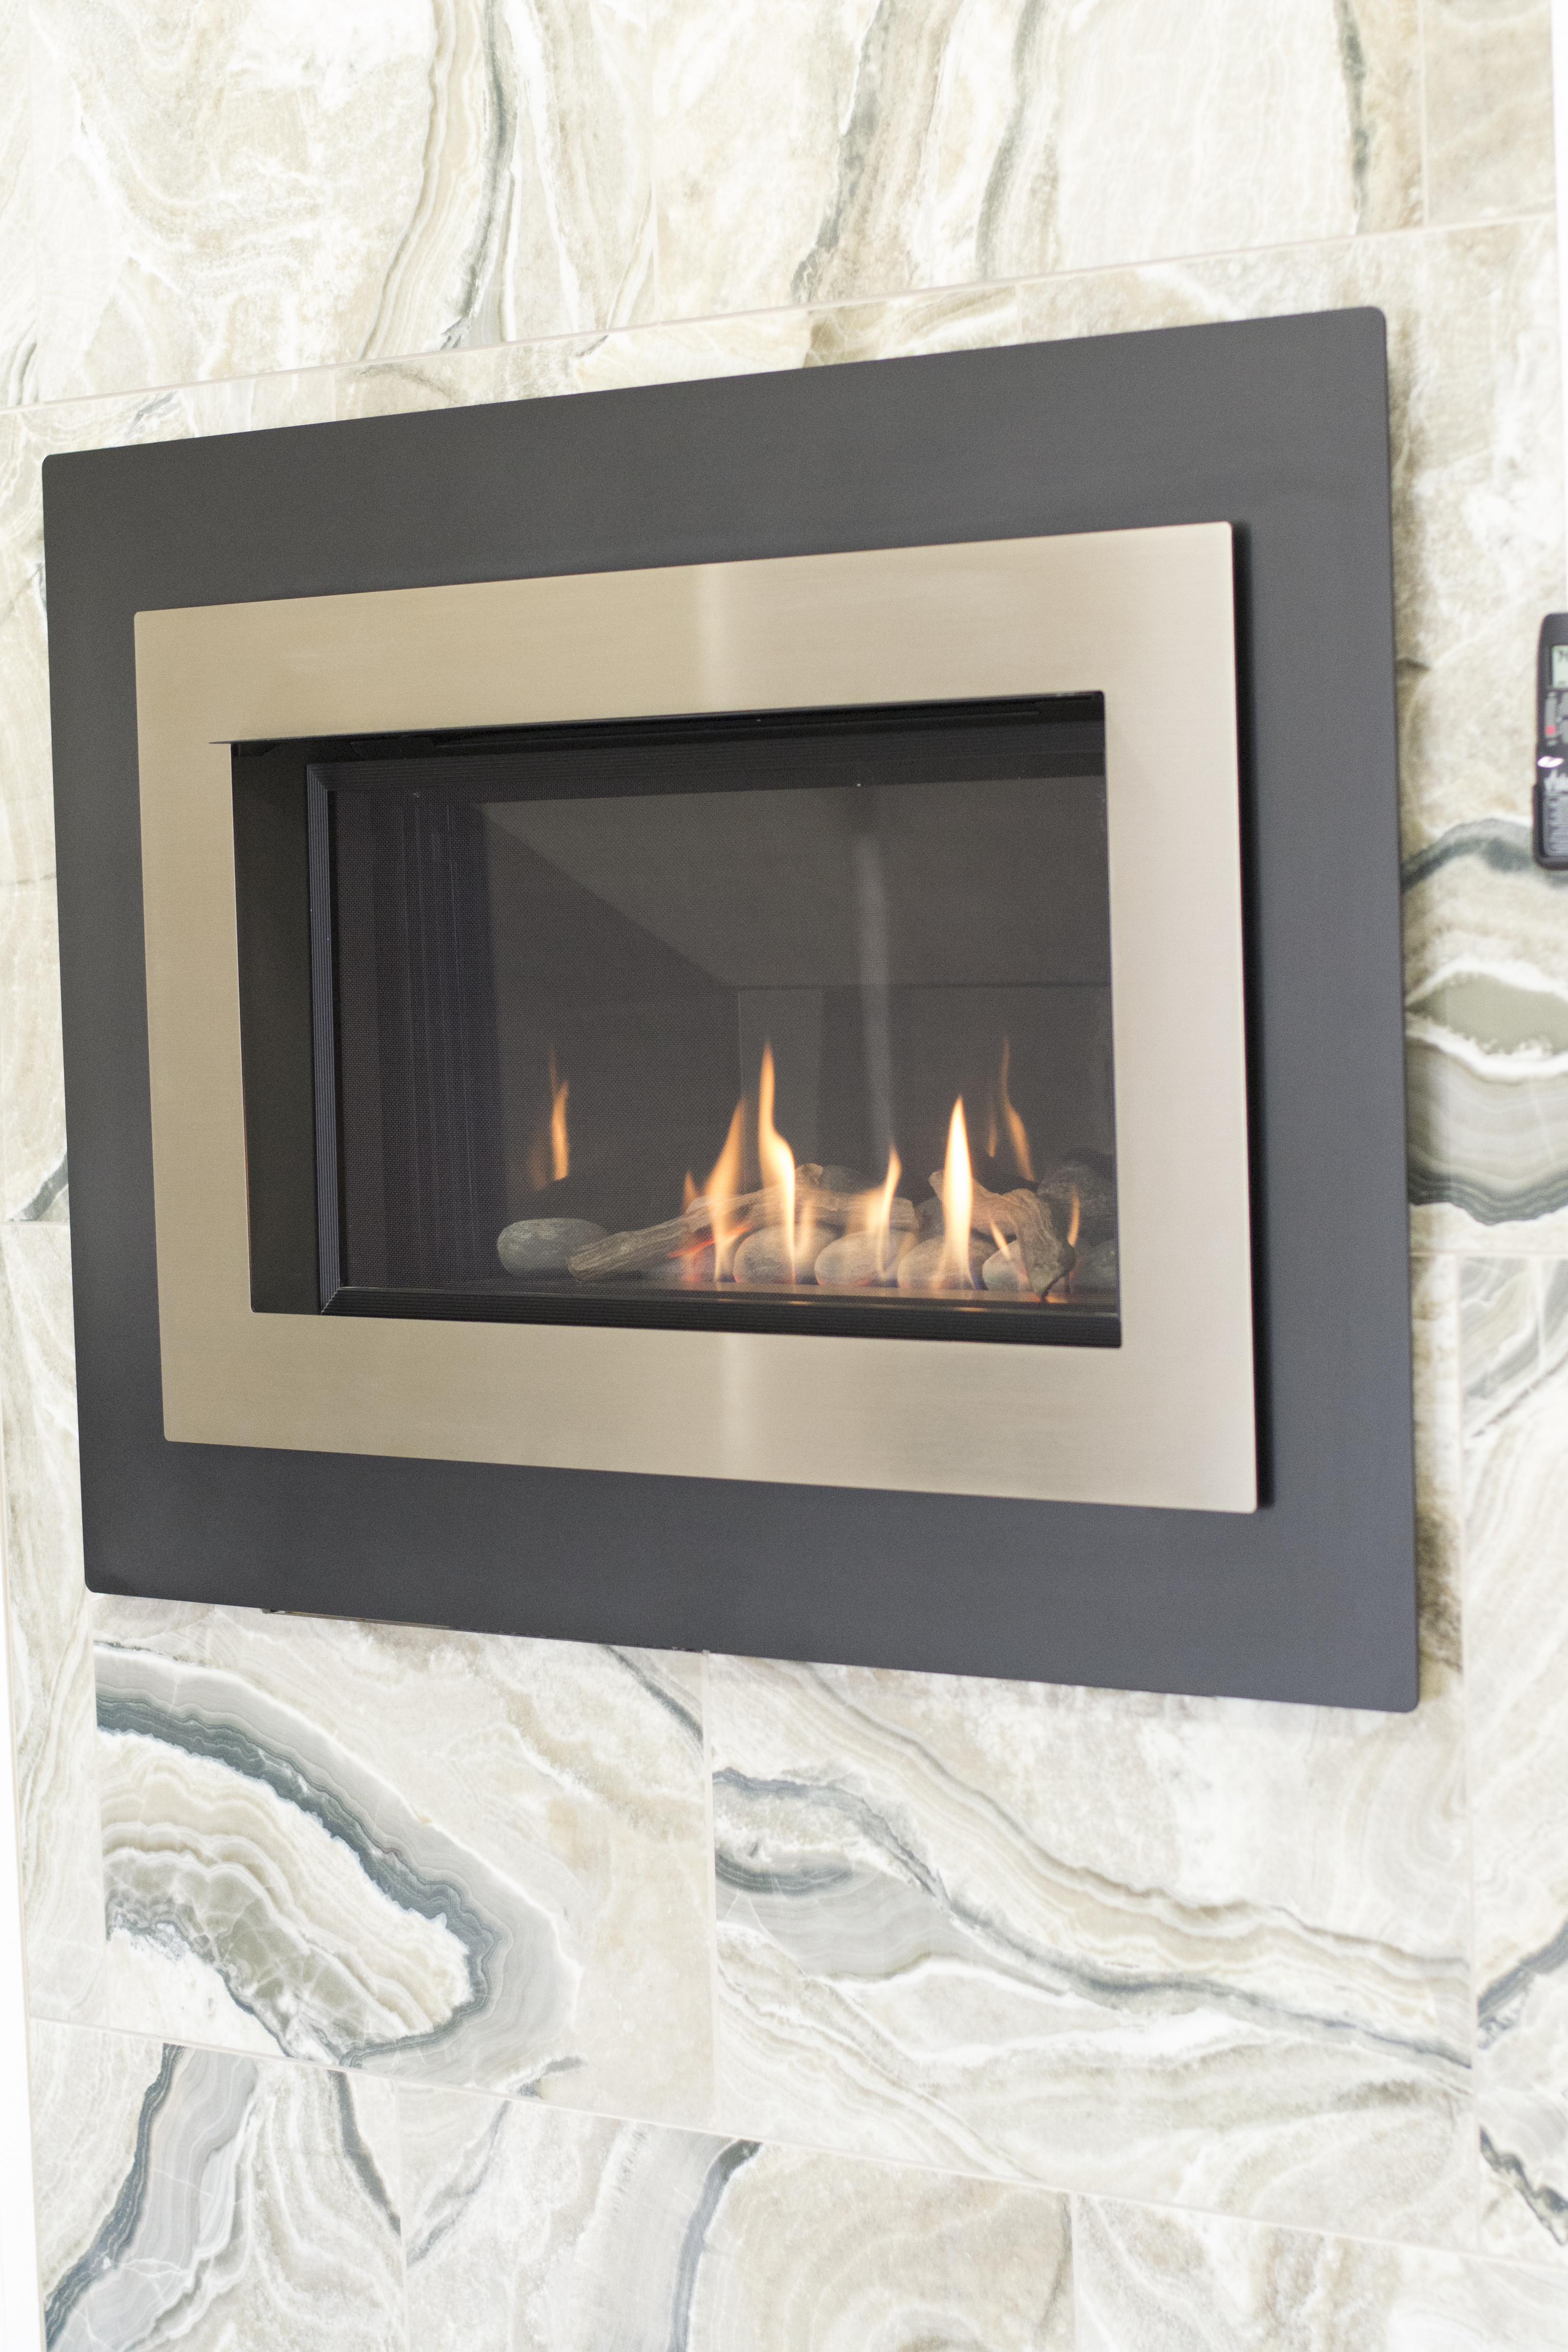 radiant portrait the gas valor h fireplace ledge fireplaces inserts seriesvalor